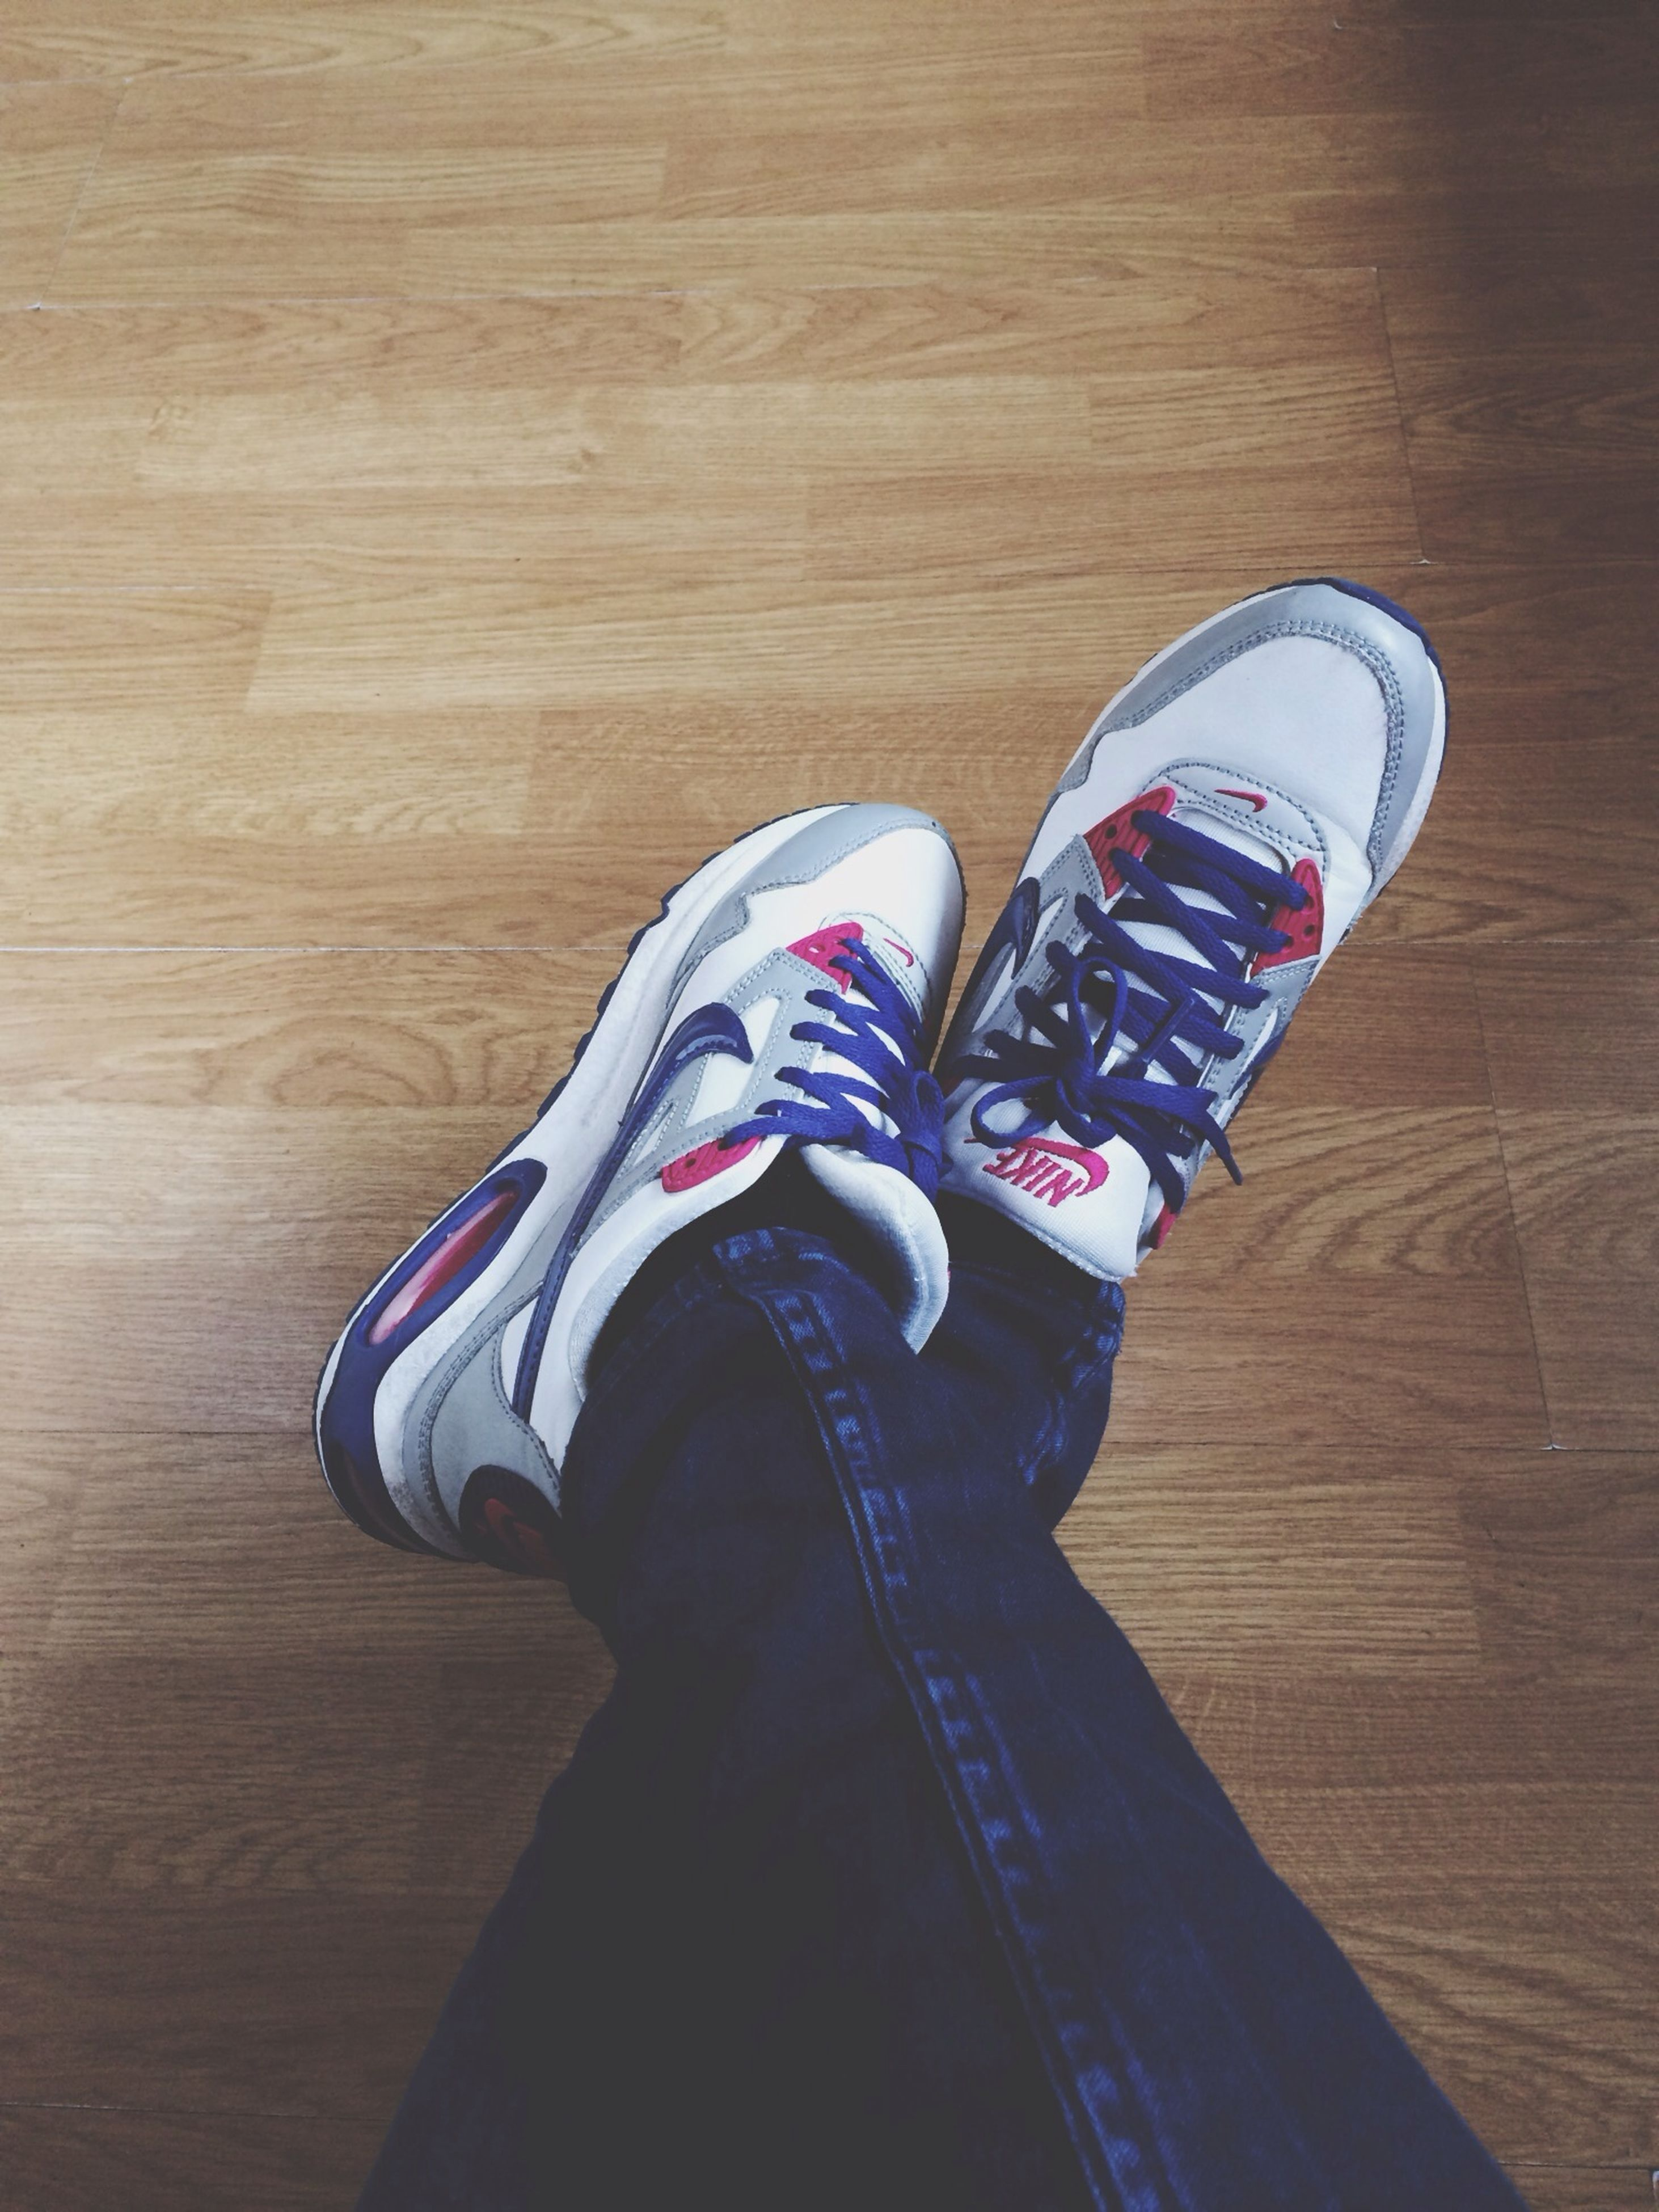 low section, shoe, person, footwear, personal perspective, jeans, high angle view, standing, human foot, lifestyles, flooring, indoors, hardwood floor, leisure activity, canvas shoe, men, casual clothing